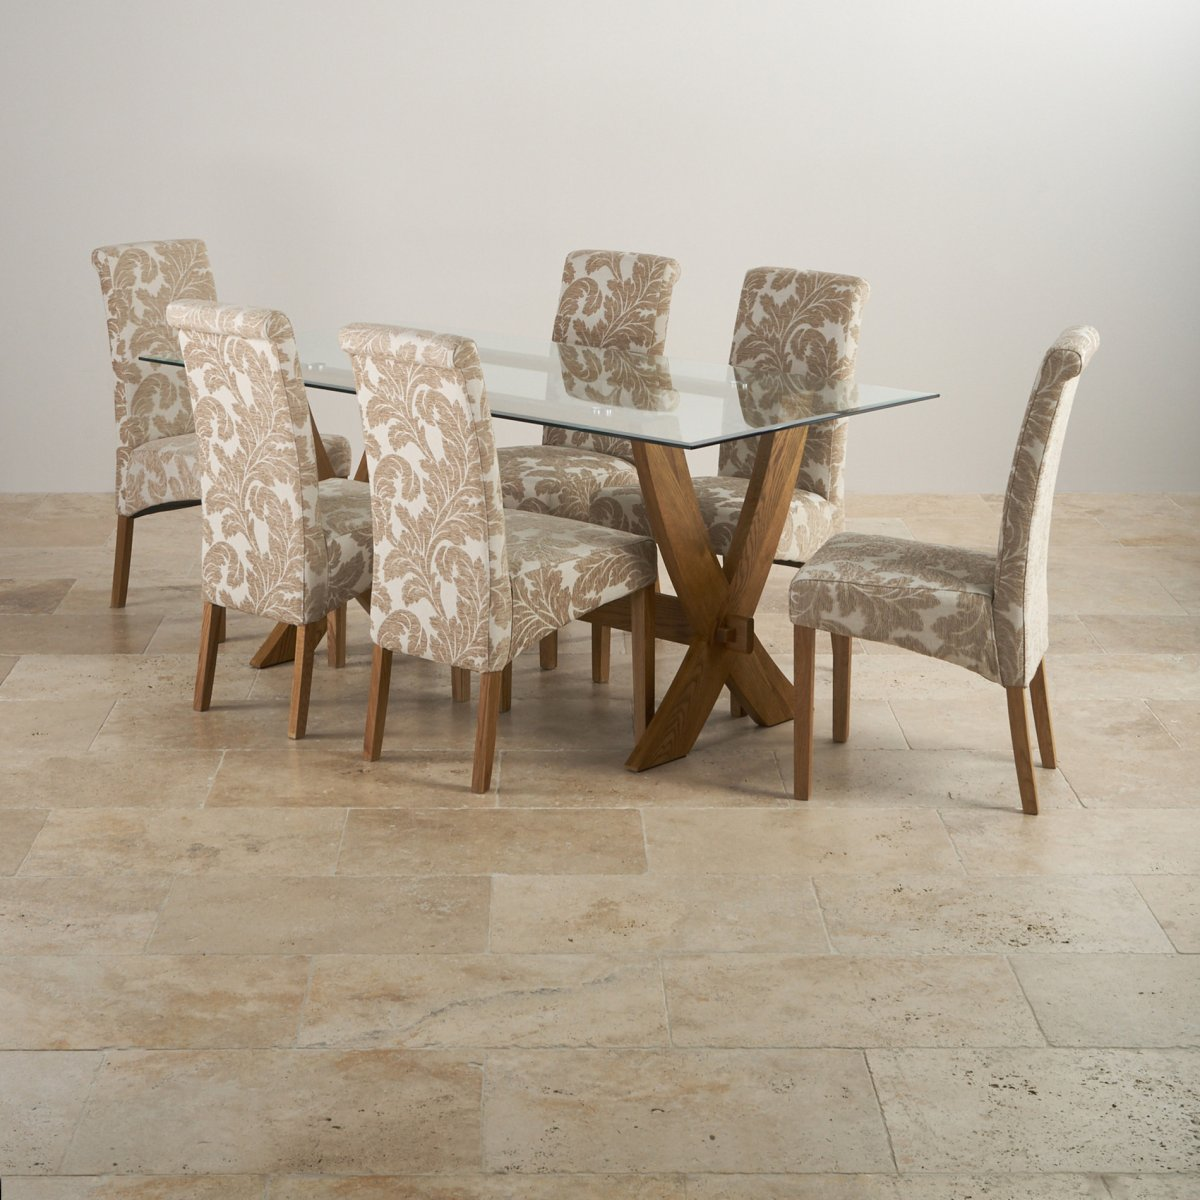 solid oak dining table and chairs elderly sale reflection rustic 43 6 patterned